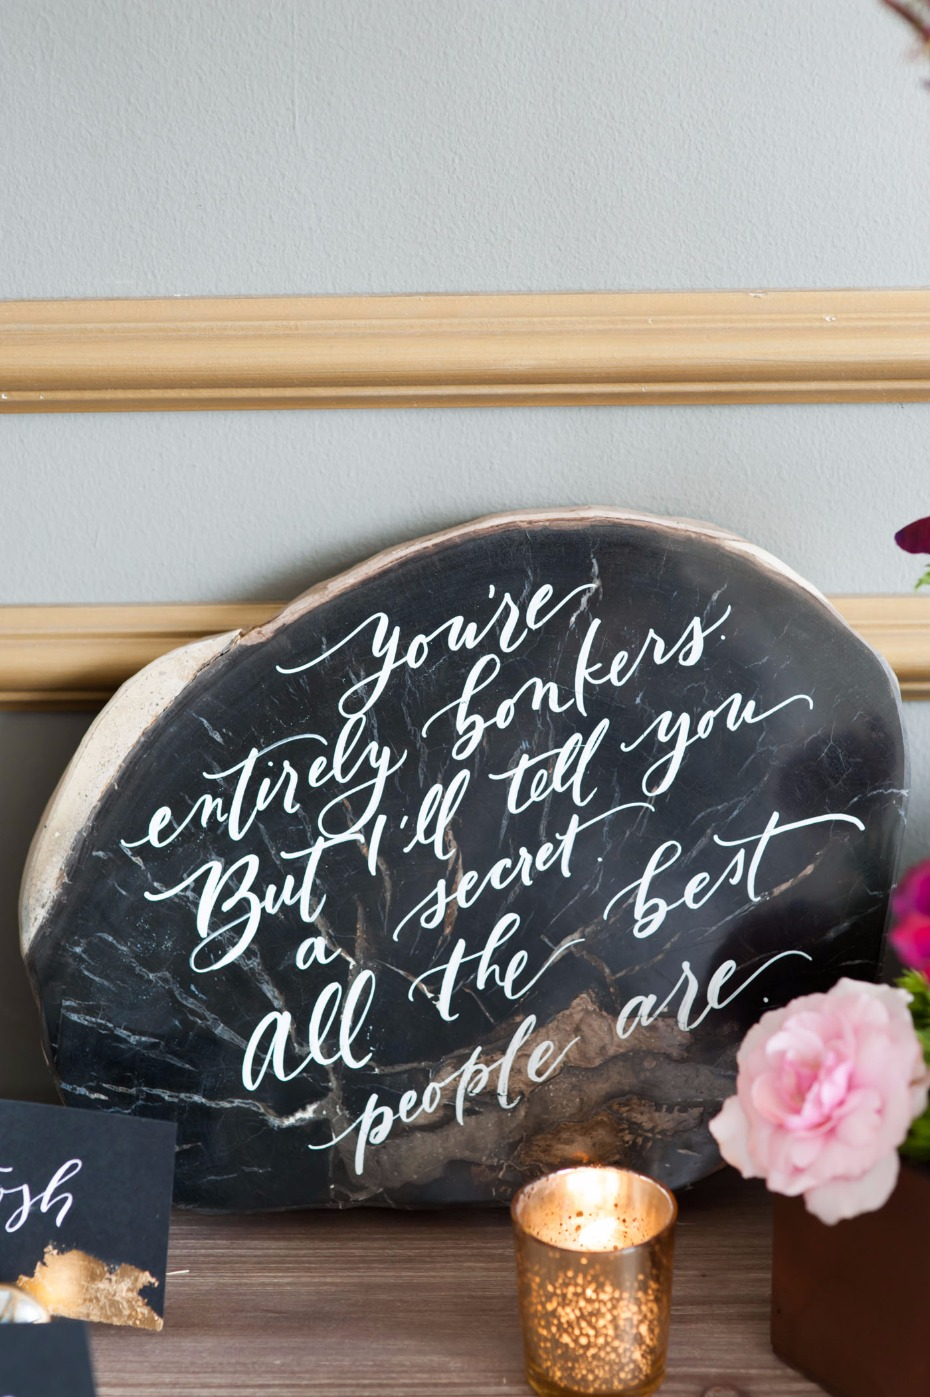 Alice in Wonderland quote for a wedding